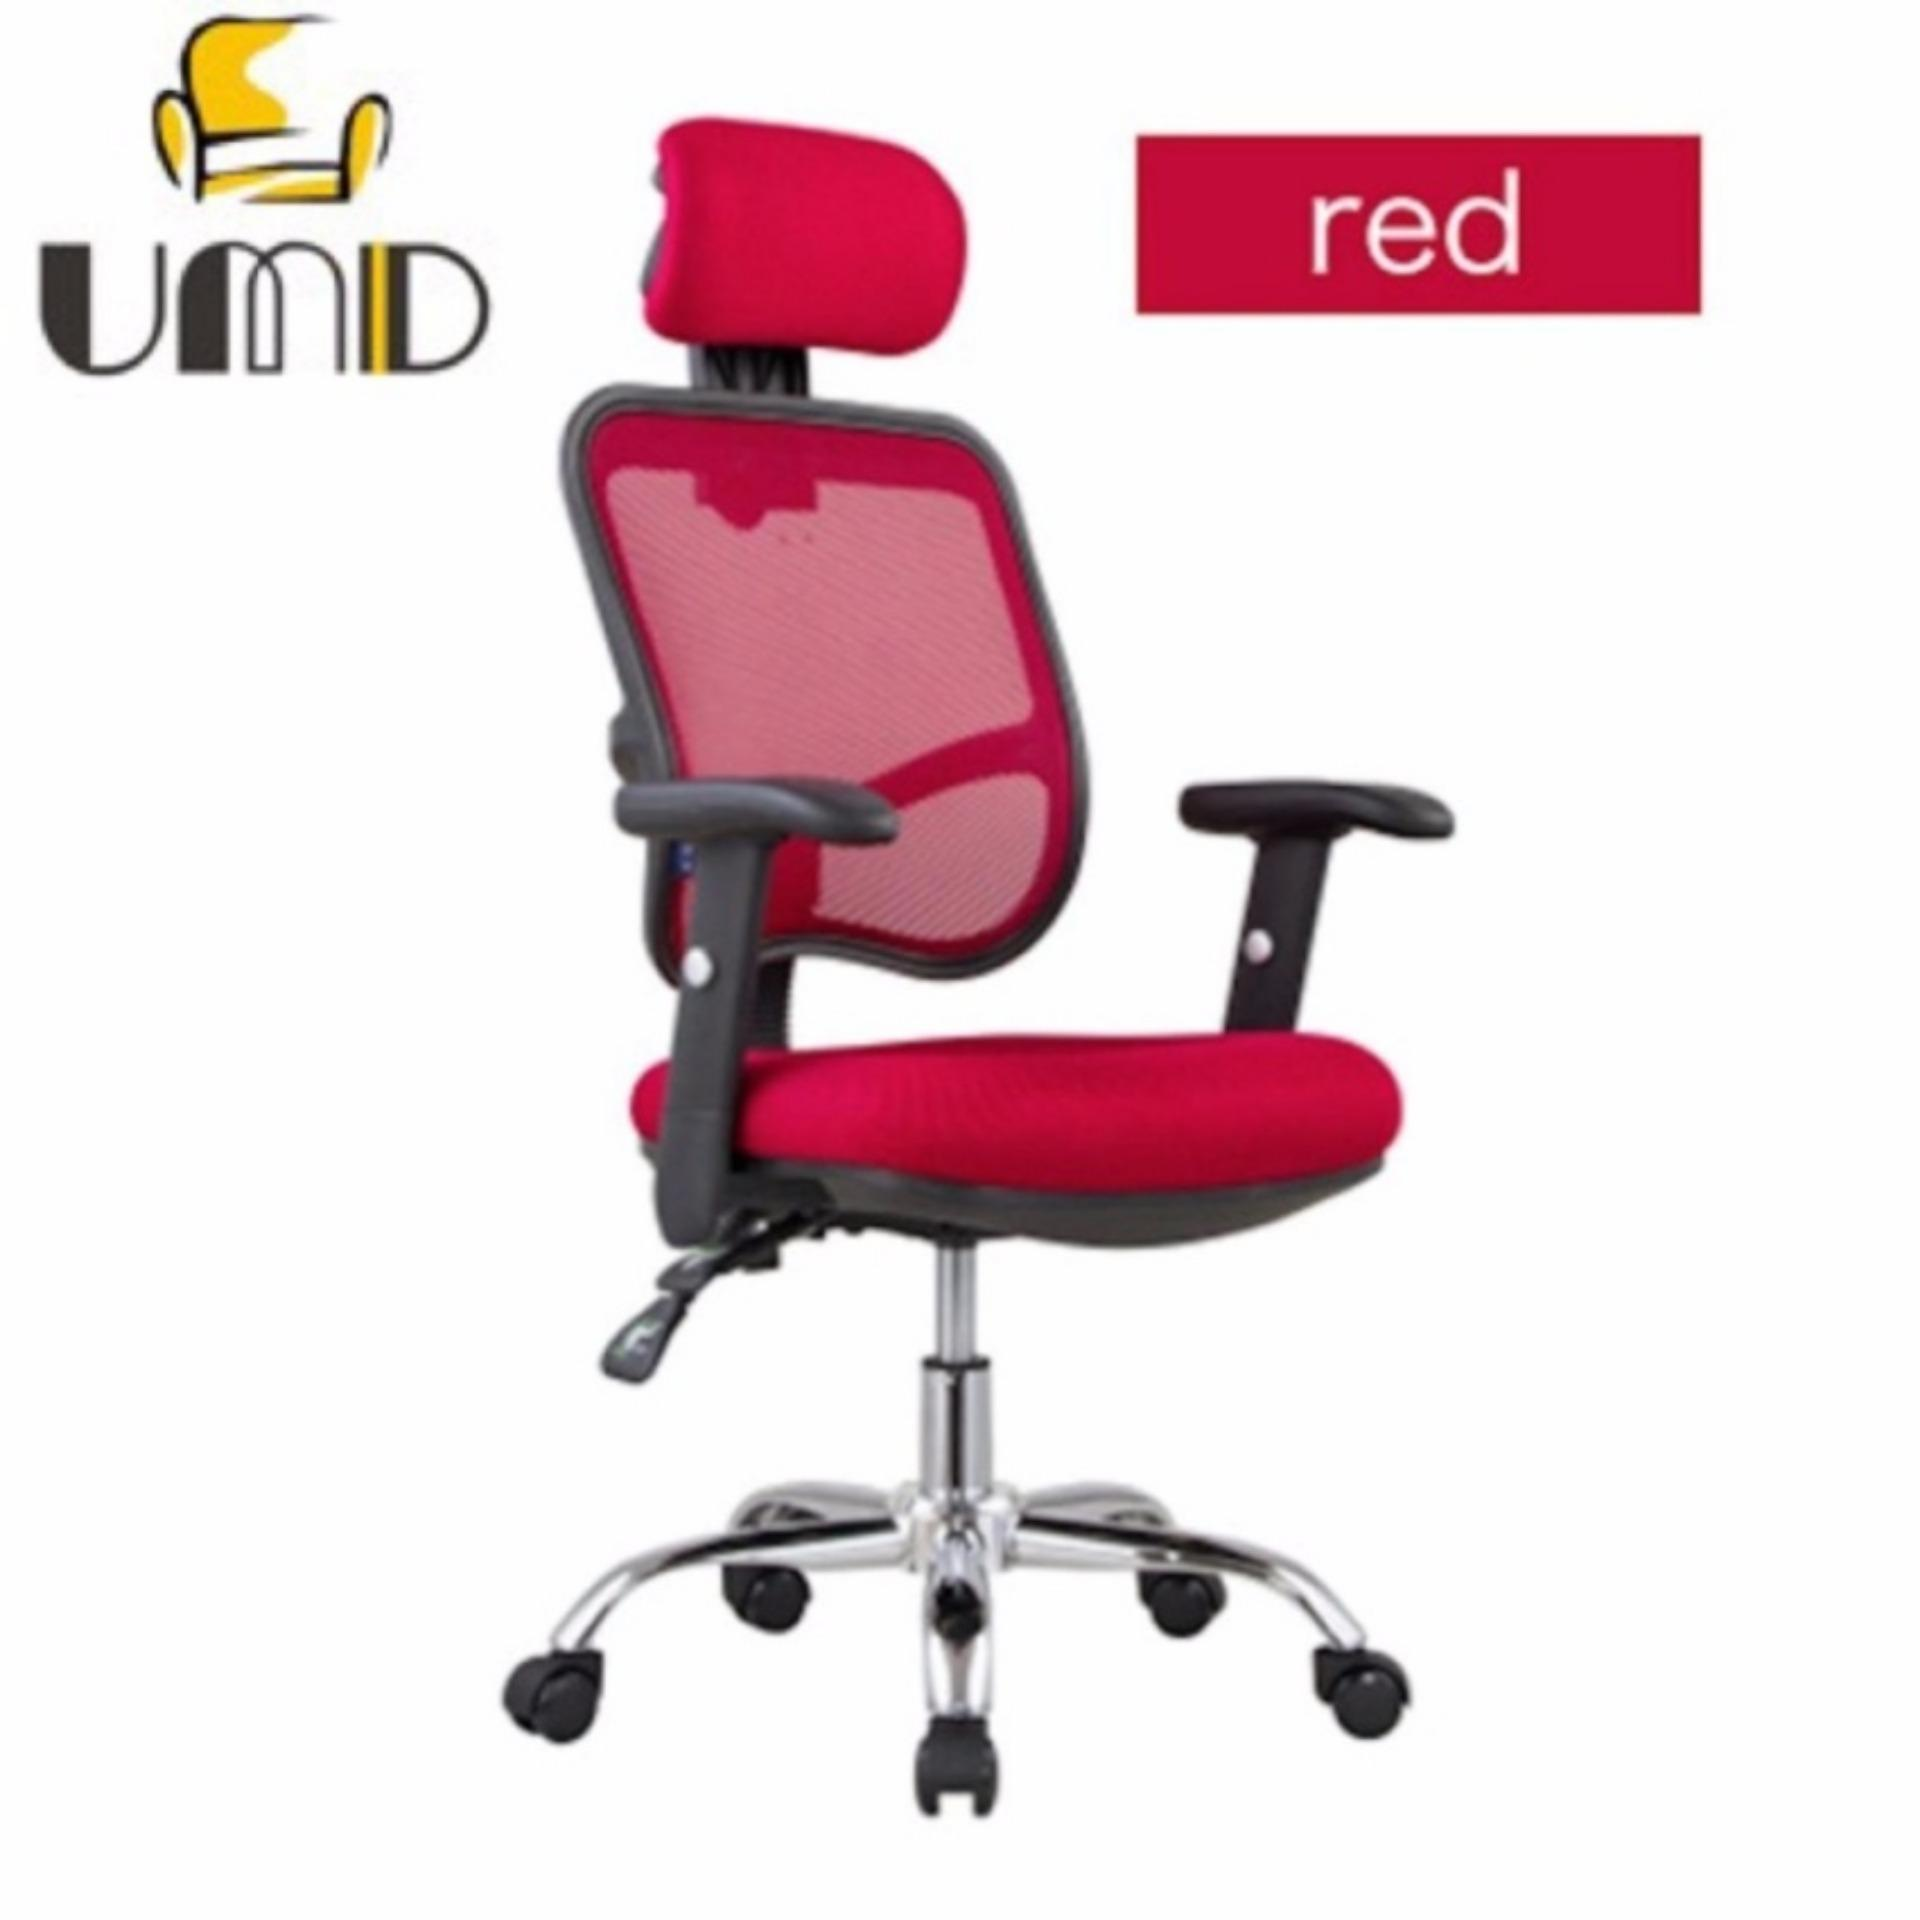 UMD Ergonomic Fully Adjustable Mesh Executive Chair Office Chair Singapore  sc 1 st  Chair Singapore & UMD Ergonomic Fully Adjustable Mesh Executive Chair Office Chair ...